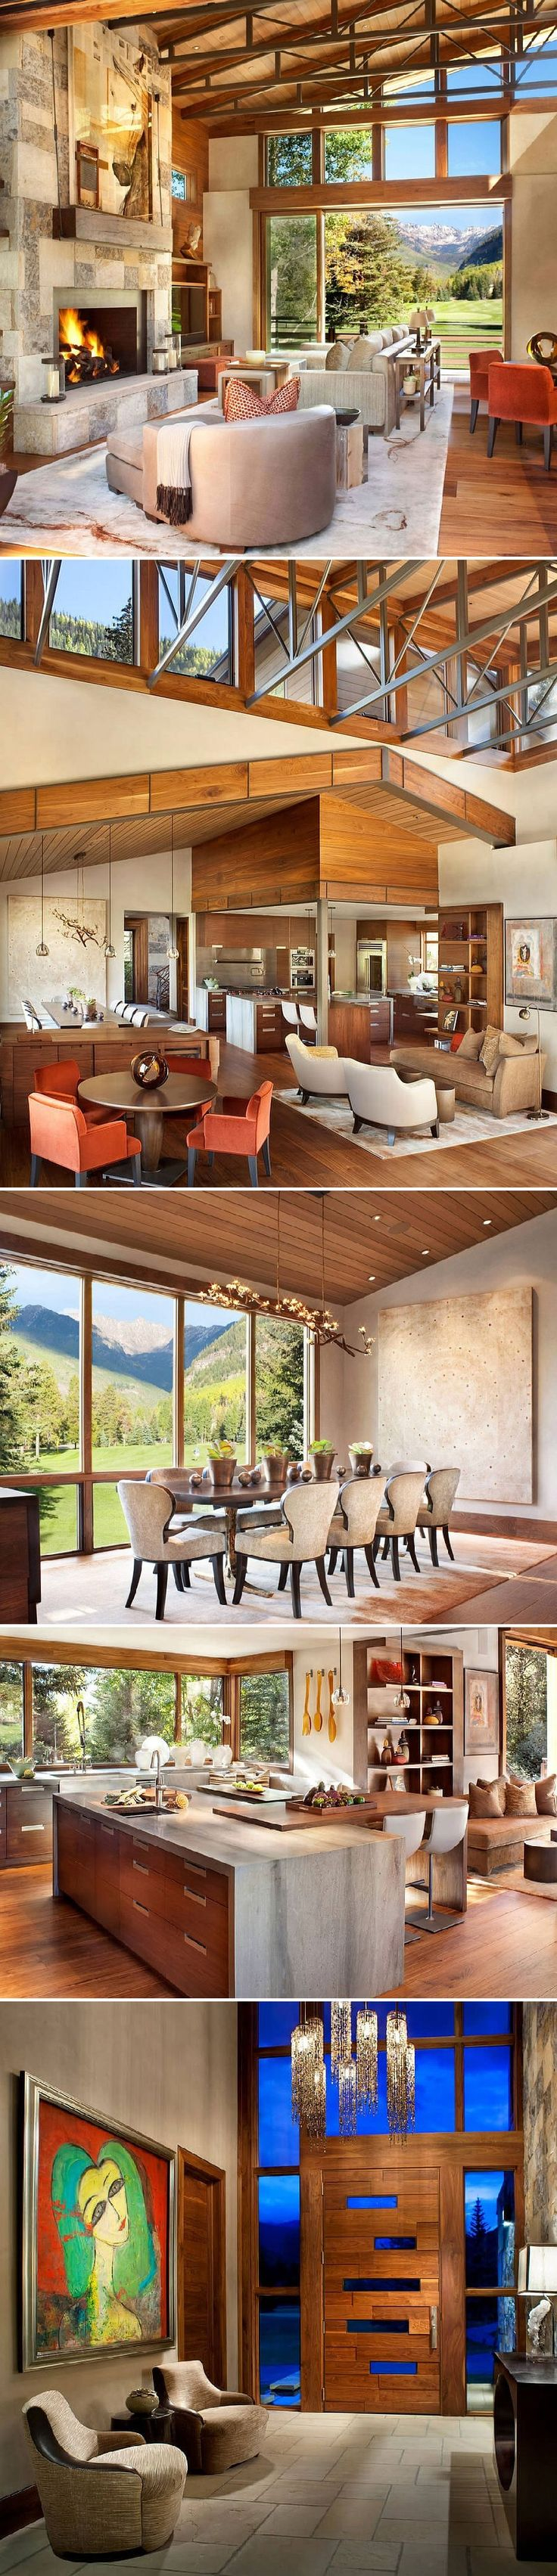 Ptarmigan Residence in Vail, Colorado, by Suman Architects